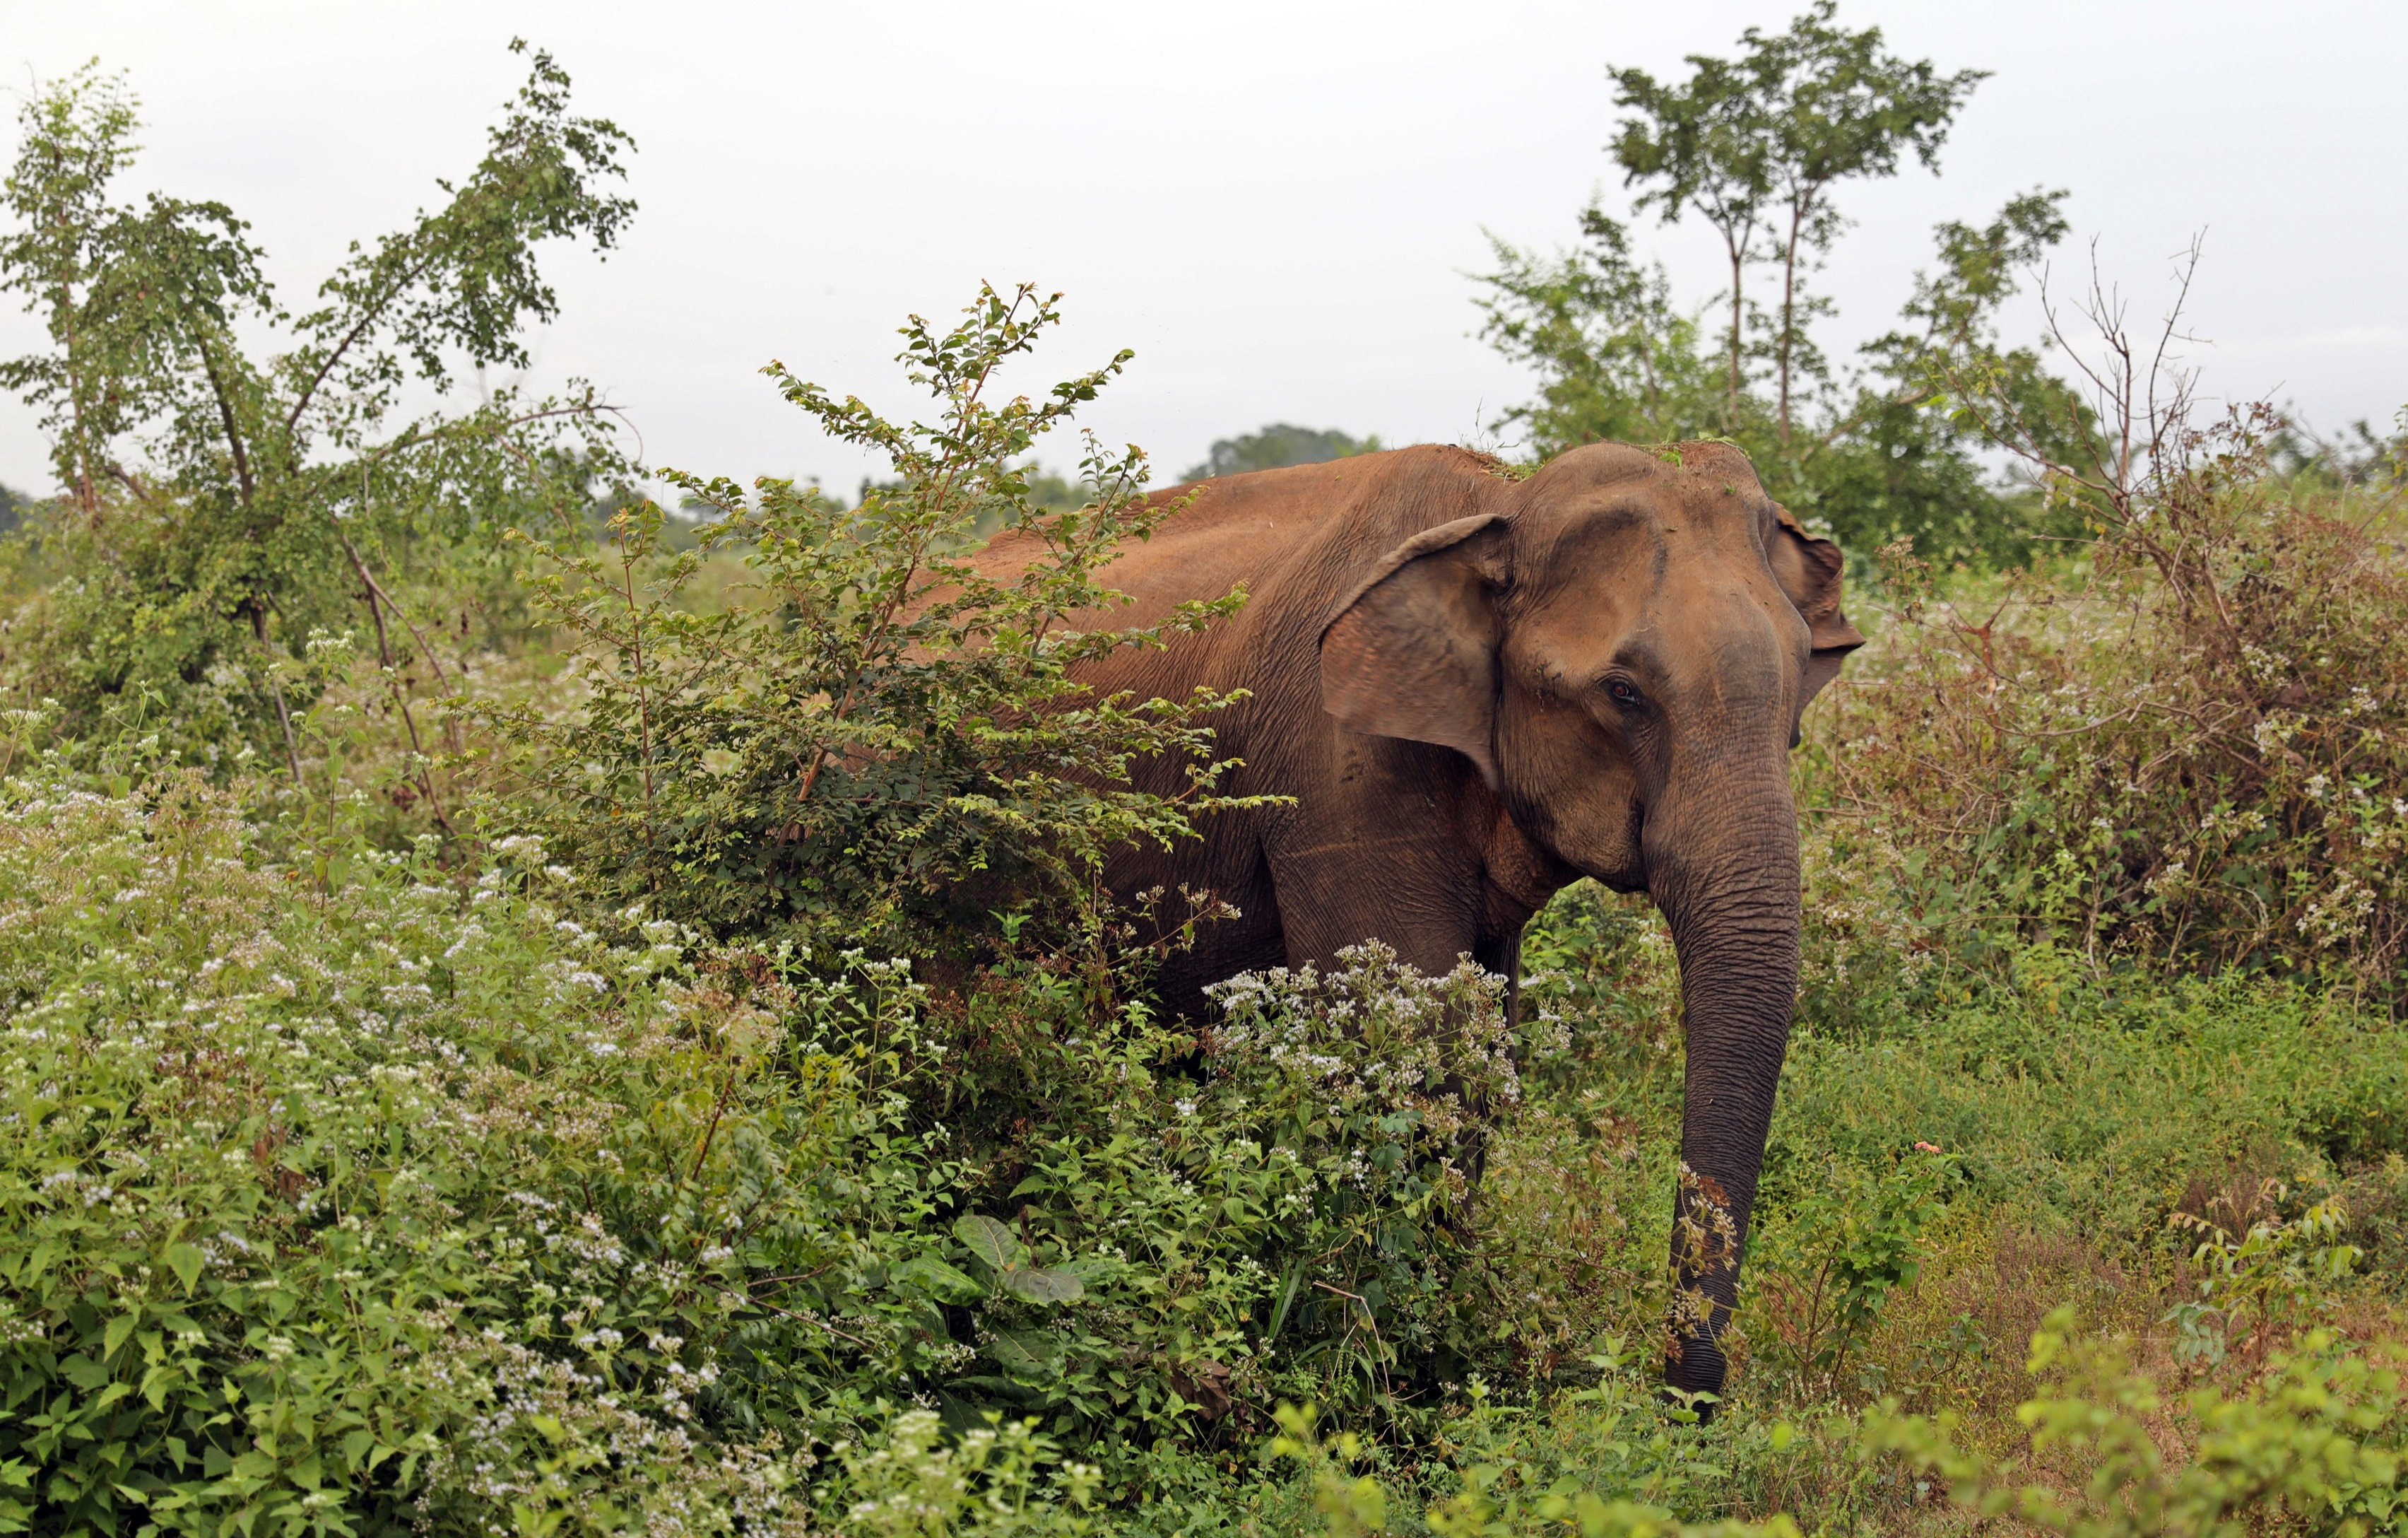 Elephant, Uda Walawe National Park